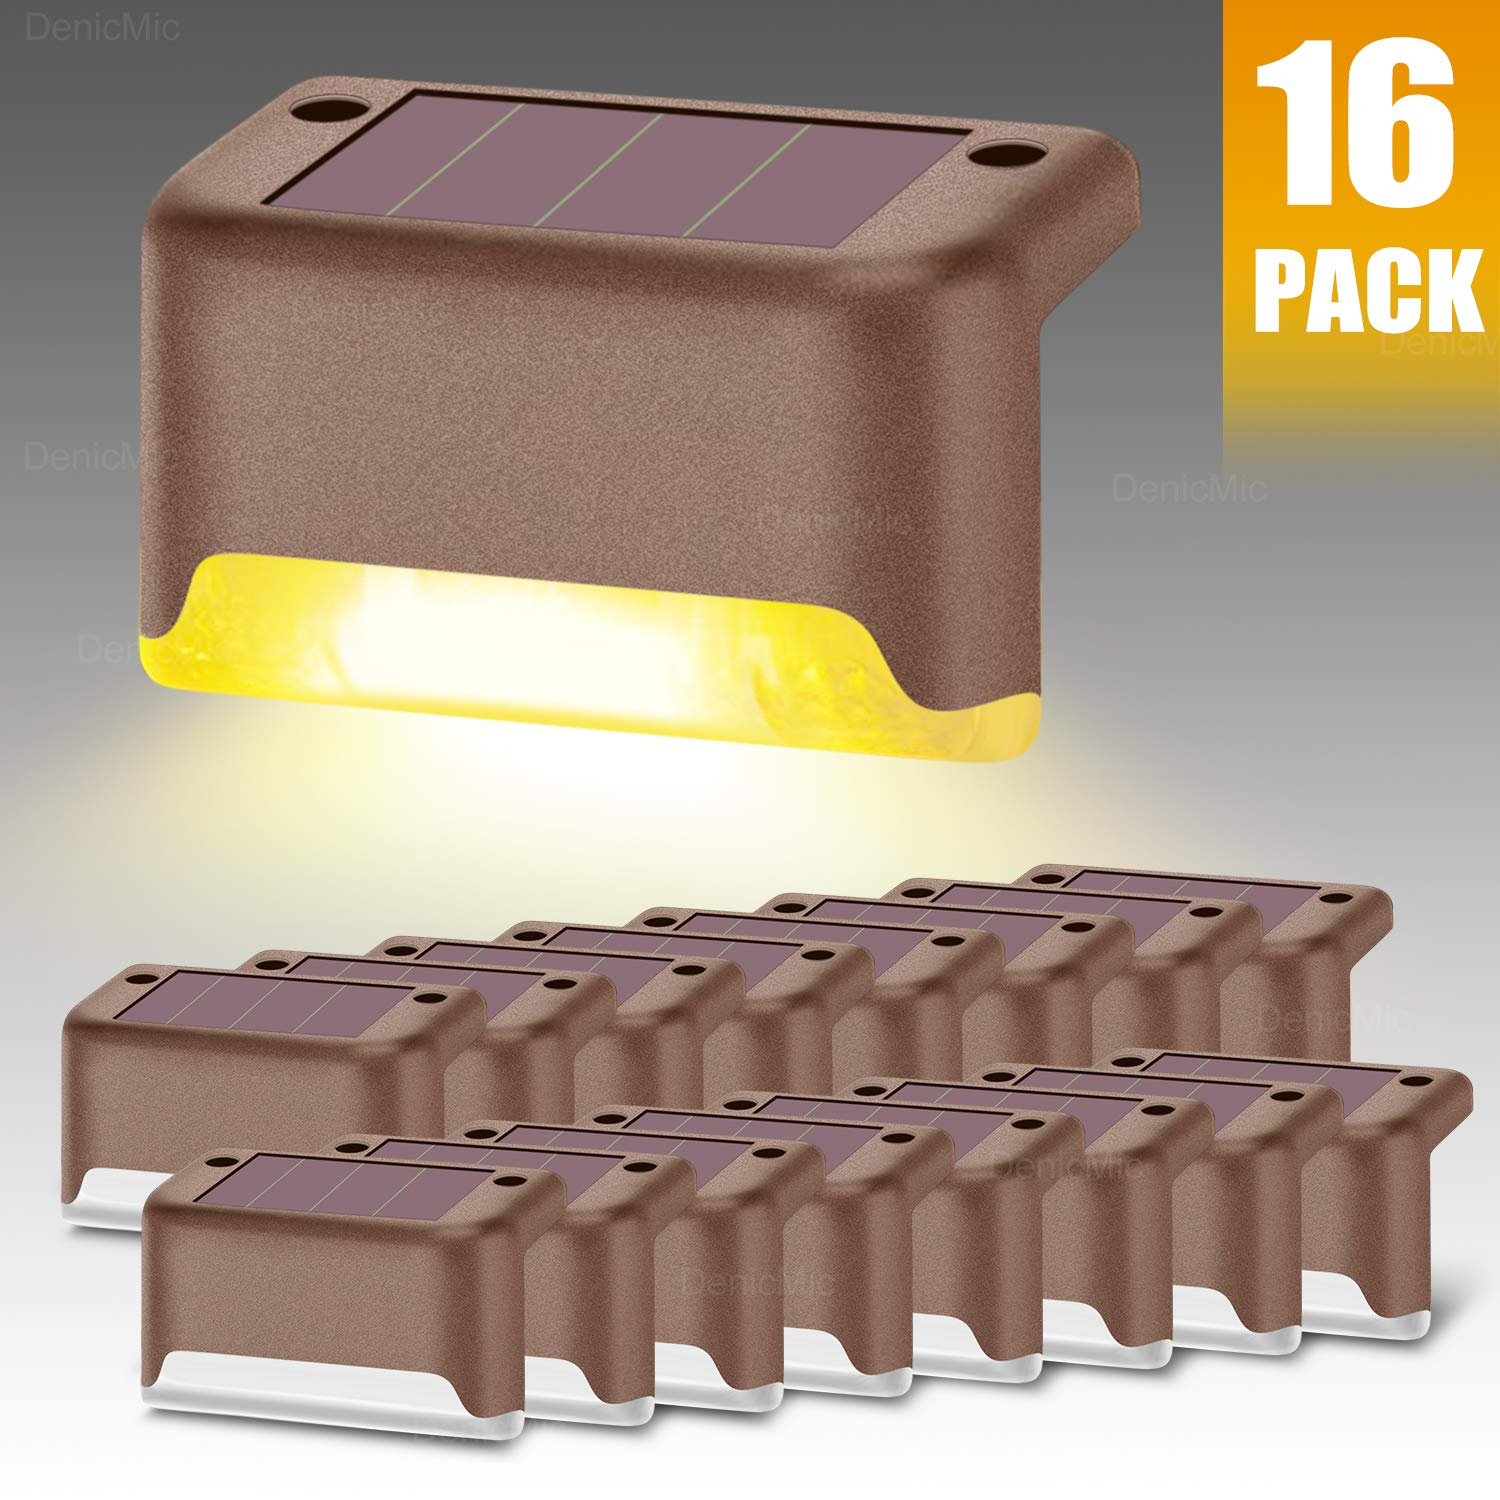 DenicMic Solar Deck Lights 16 Pack Fence Post Solar Lights for Patio Pool Stairs Step and Pathway, Weatherproof LED Deck Lights Solar Powered Outdoor Lights (Warm White) by DenicMic